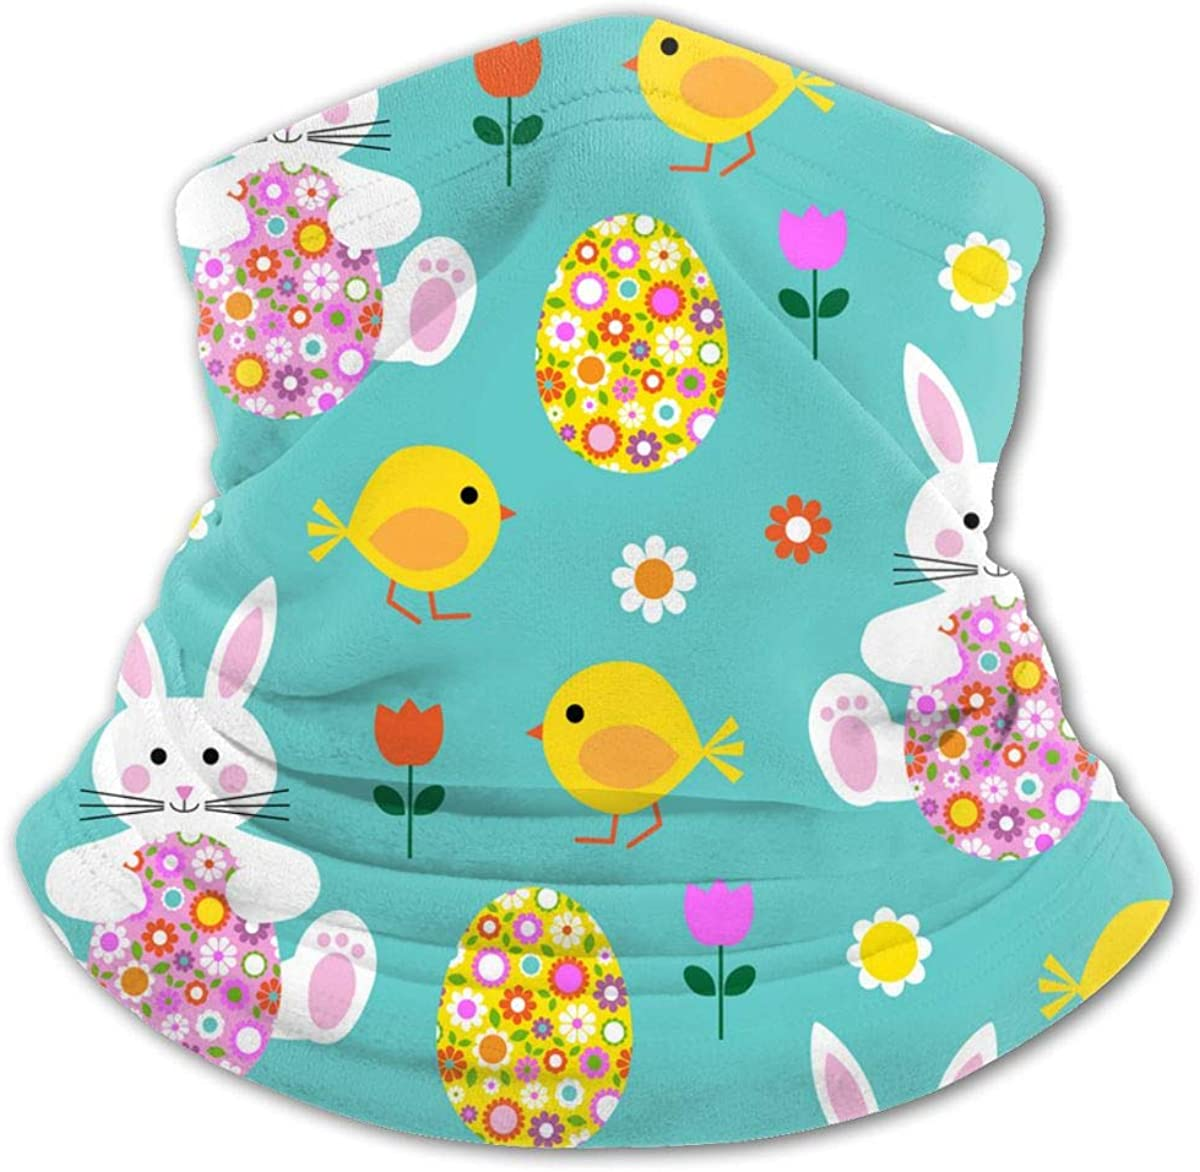 Easter Bunny Chick and Flower Egg Neck Gaiter Balaclava Bandana Headwear Cooling Scarf Variety Face Towel